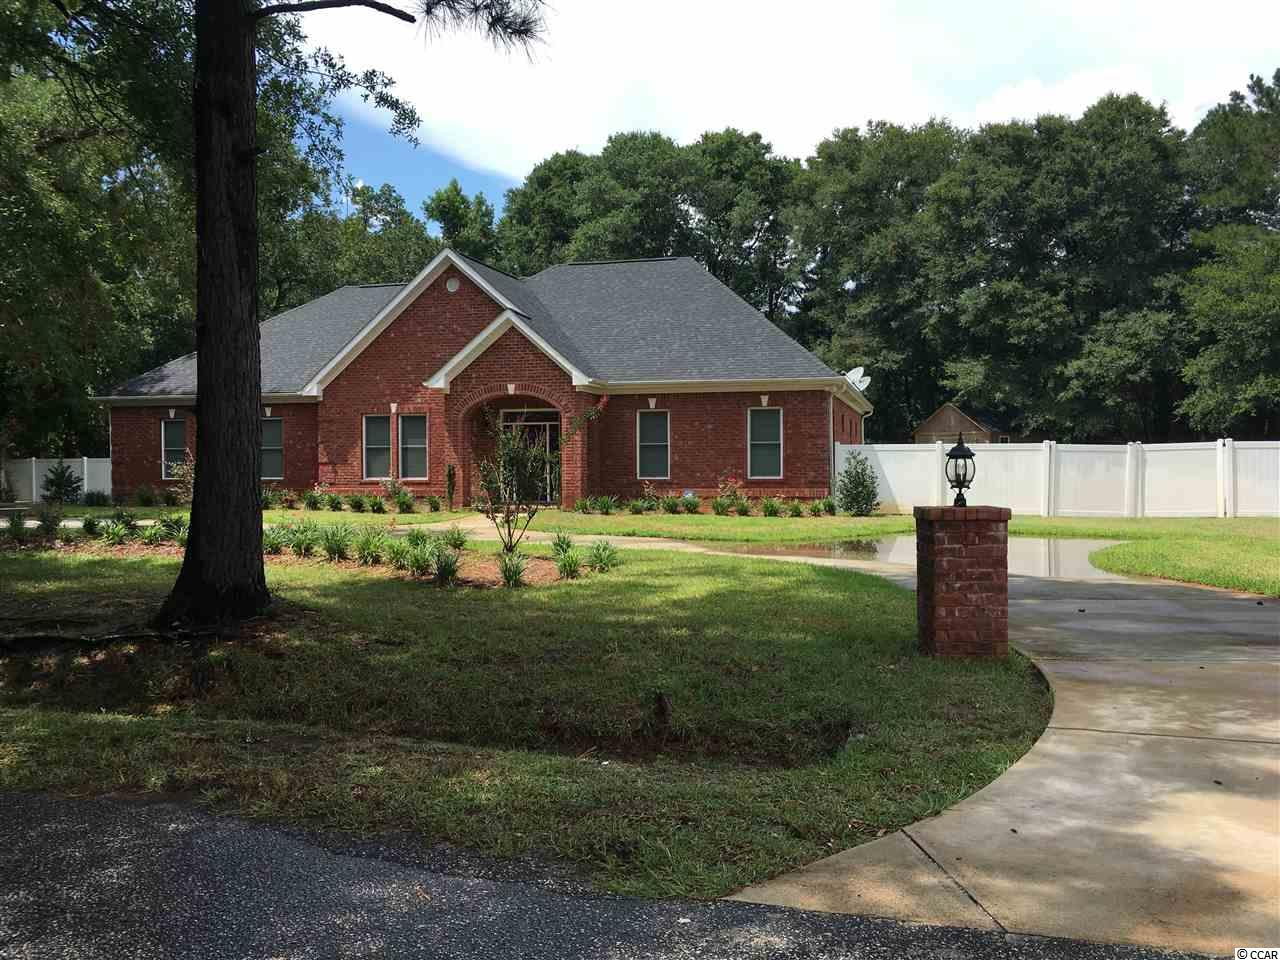 BEAUTIFUL ALL BRICK 3 BEDROOMS, 3.5 BATHS HOME!  This home was built in 2015 and is walk-in ready. It is situated on 1.1 Acres. This lovely home has a manicured lawn and privacy fence.  Large bedrooms with screened patio entrance from Master Bedroom, open spaced great room, large backyard, state-of-the -art kitchen with stainless steel appliances; huge 2-car garage with upstairs storage room, and includes an additional shed outside.  GREAT FEATURES makes this home very special.